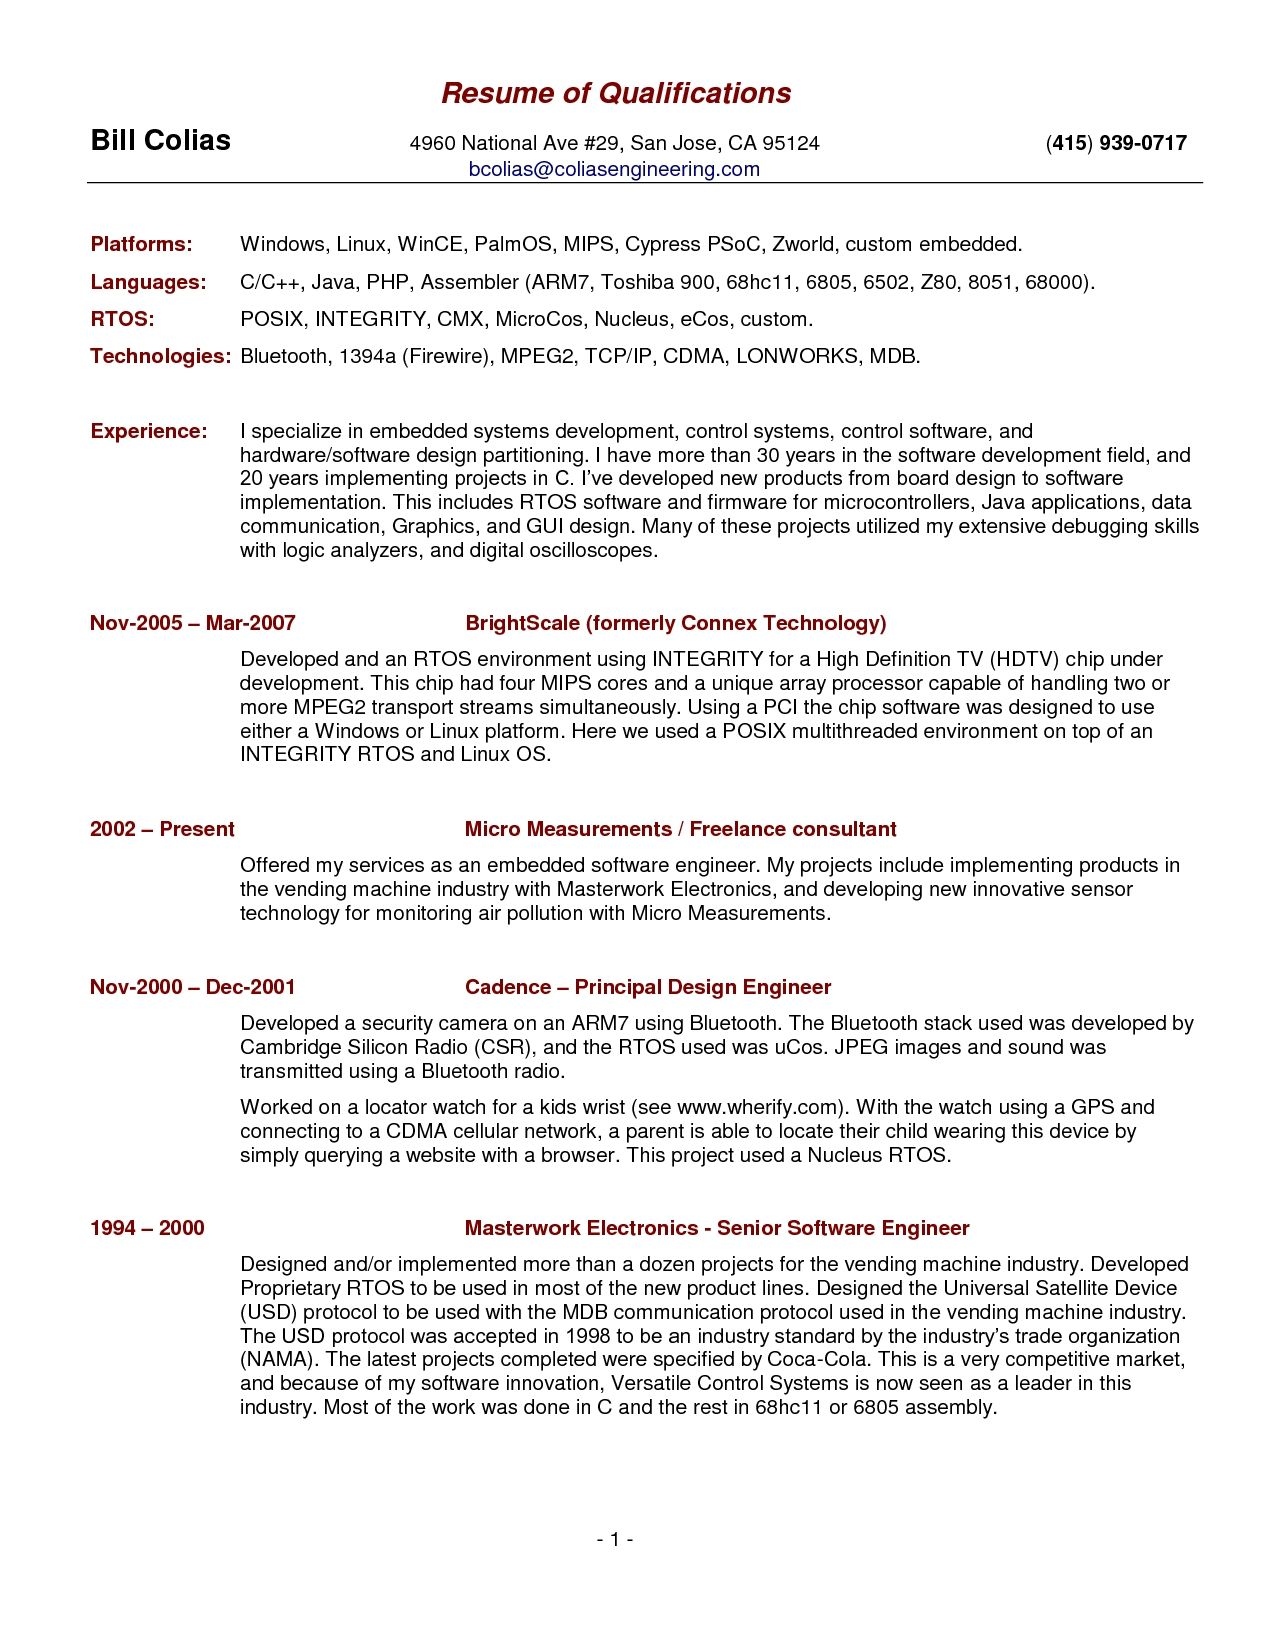 sample of skills and qualifications for a resume qualifications for a resume examples 7f8ea3a2a new resume